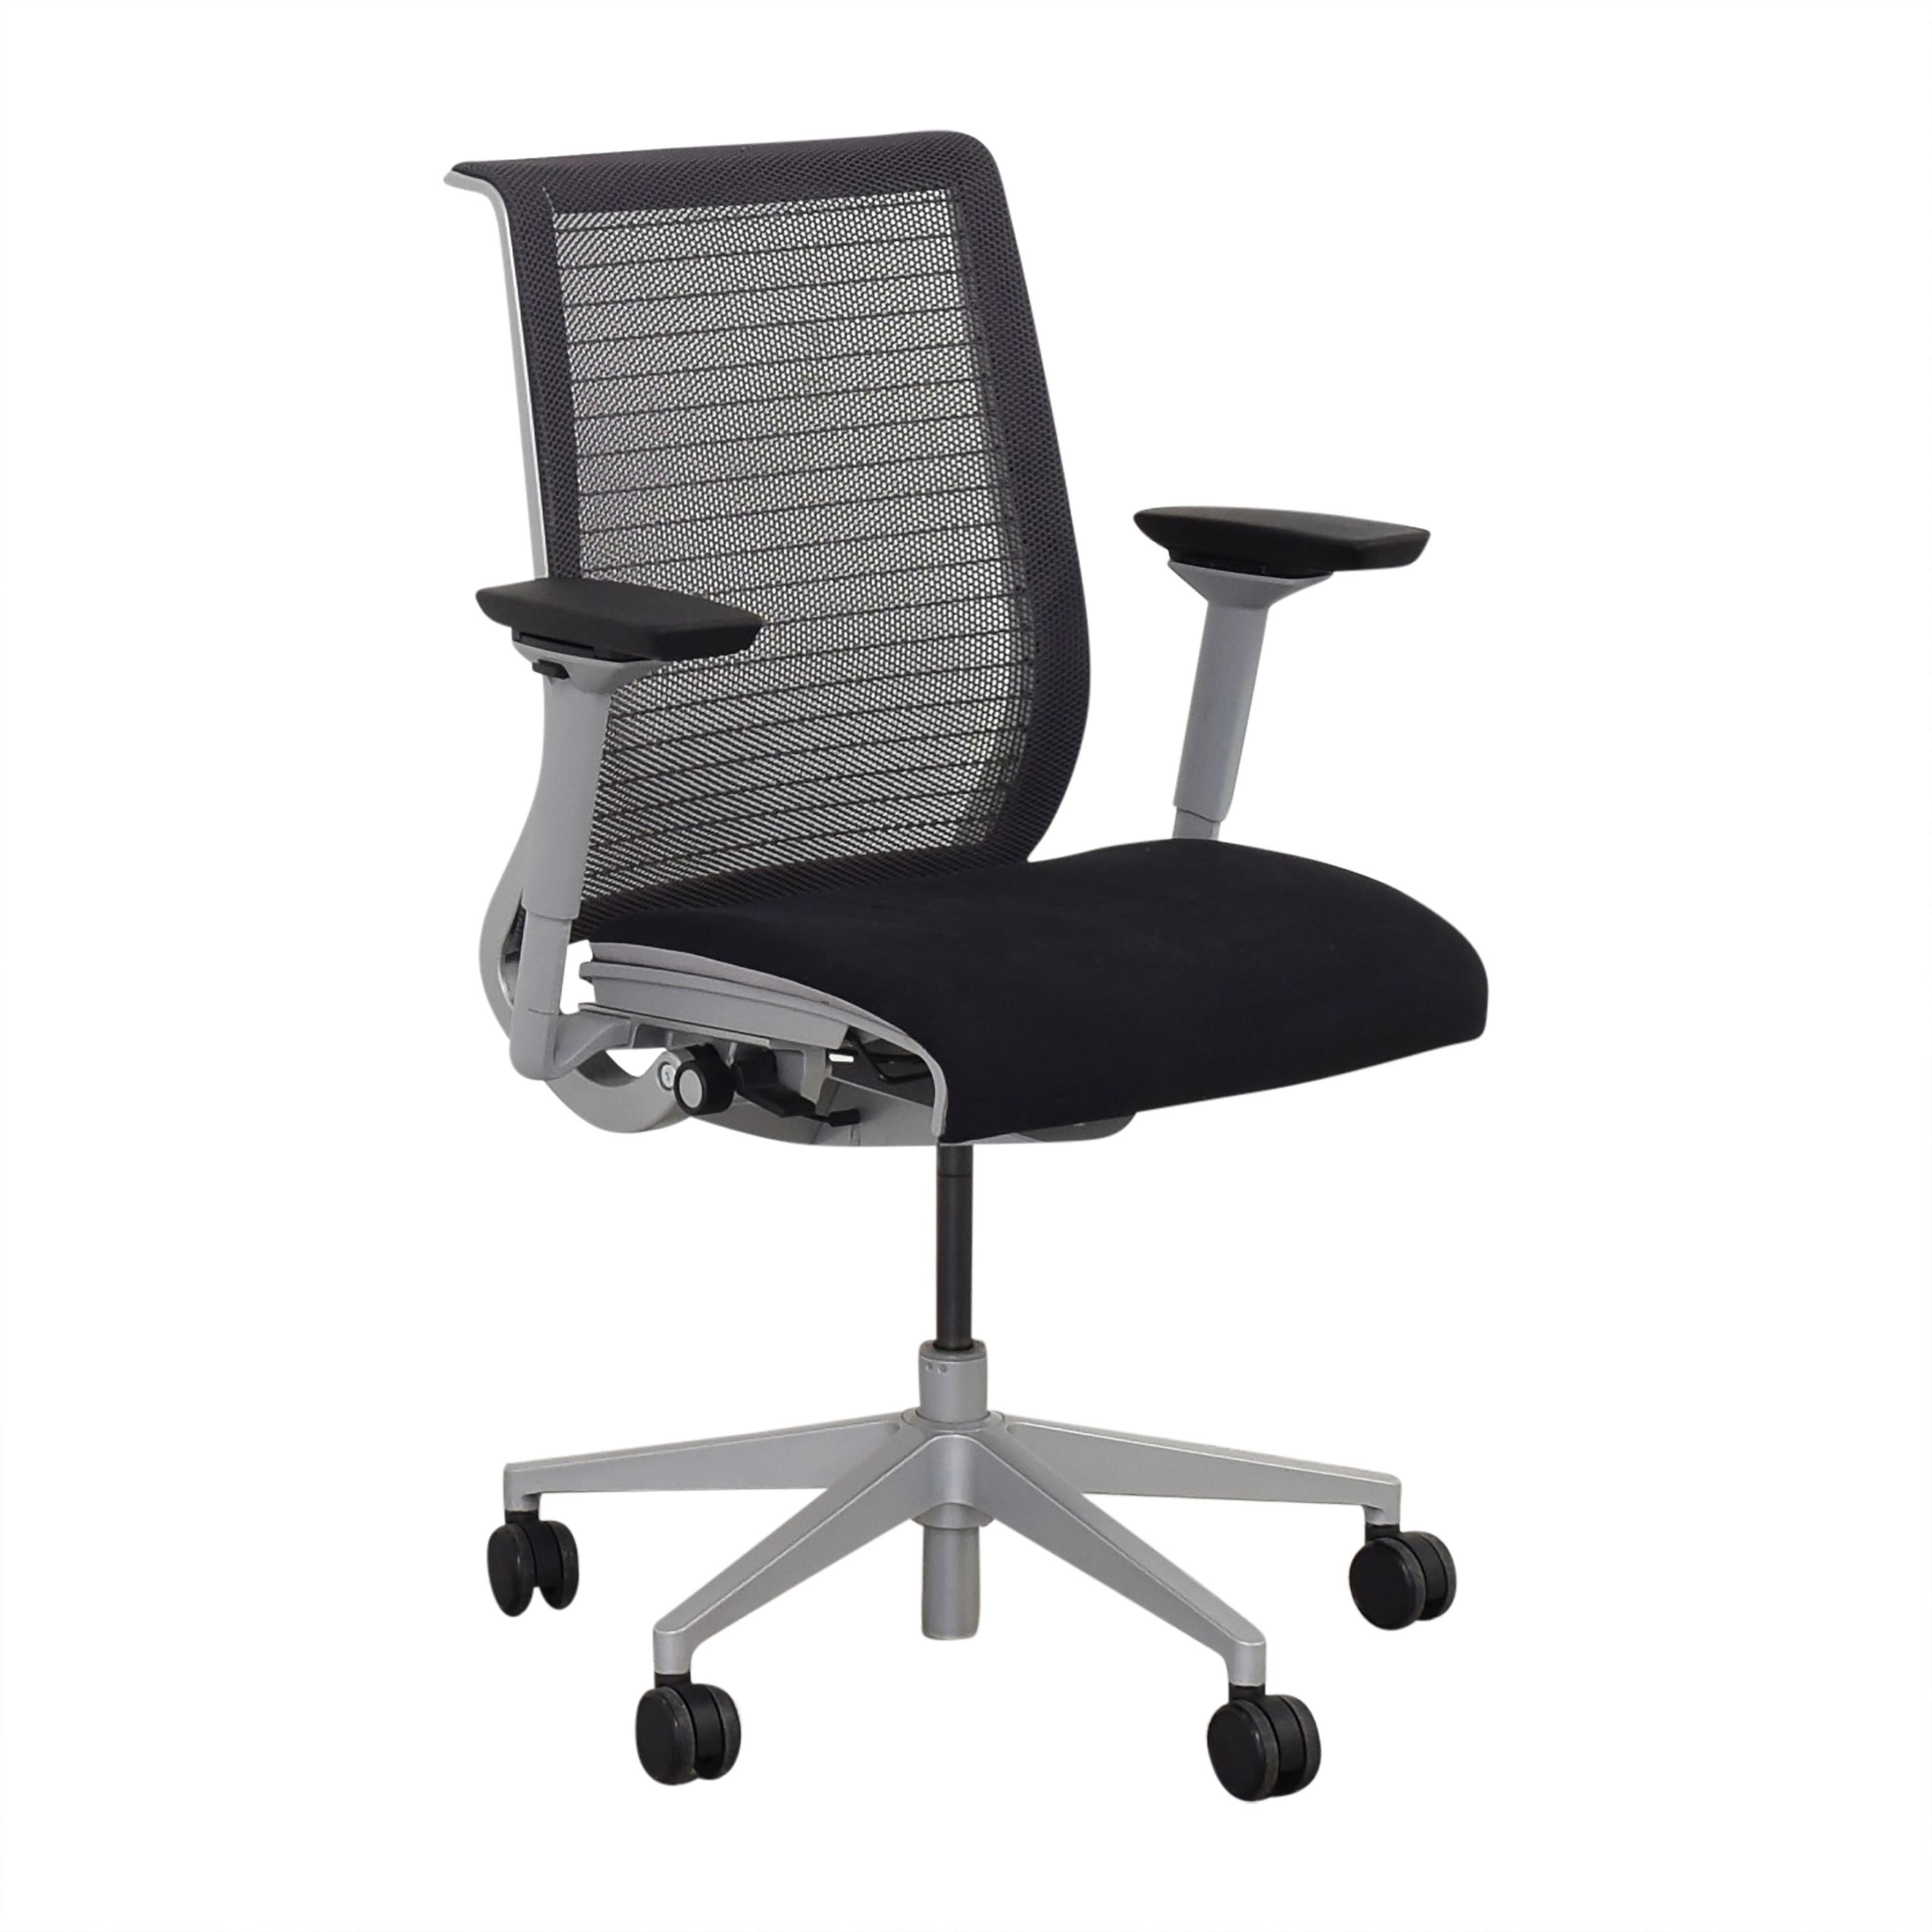 Steelcase Steelcase Cobi Swivel Chair price